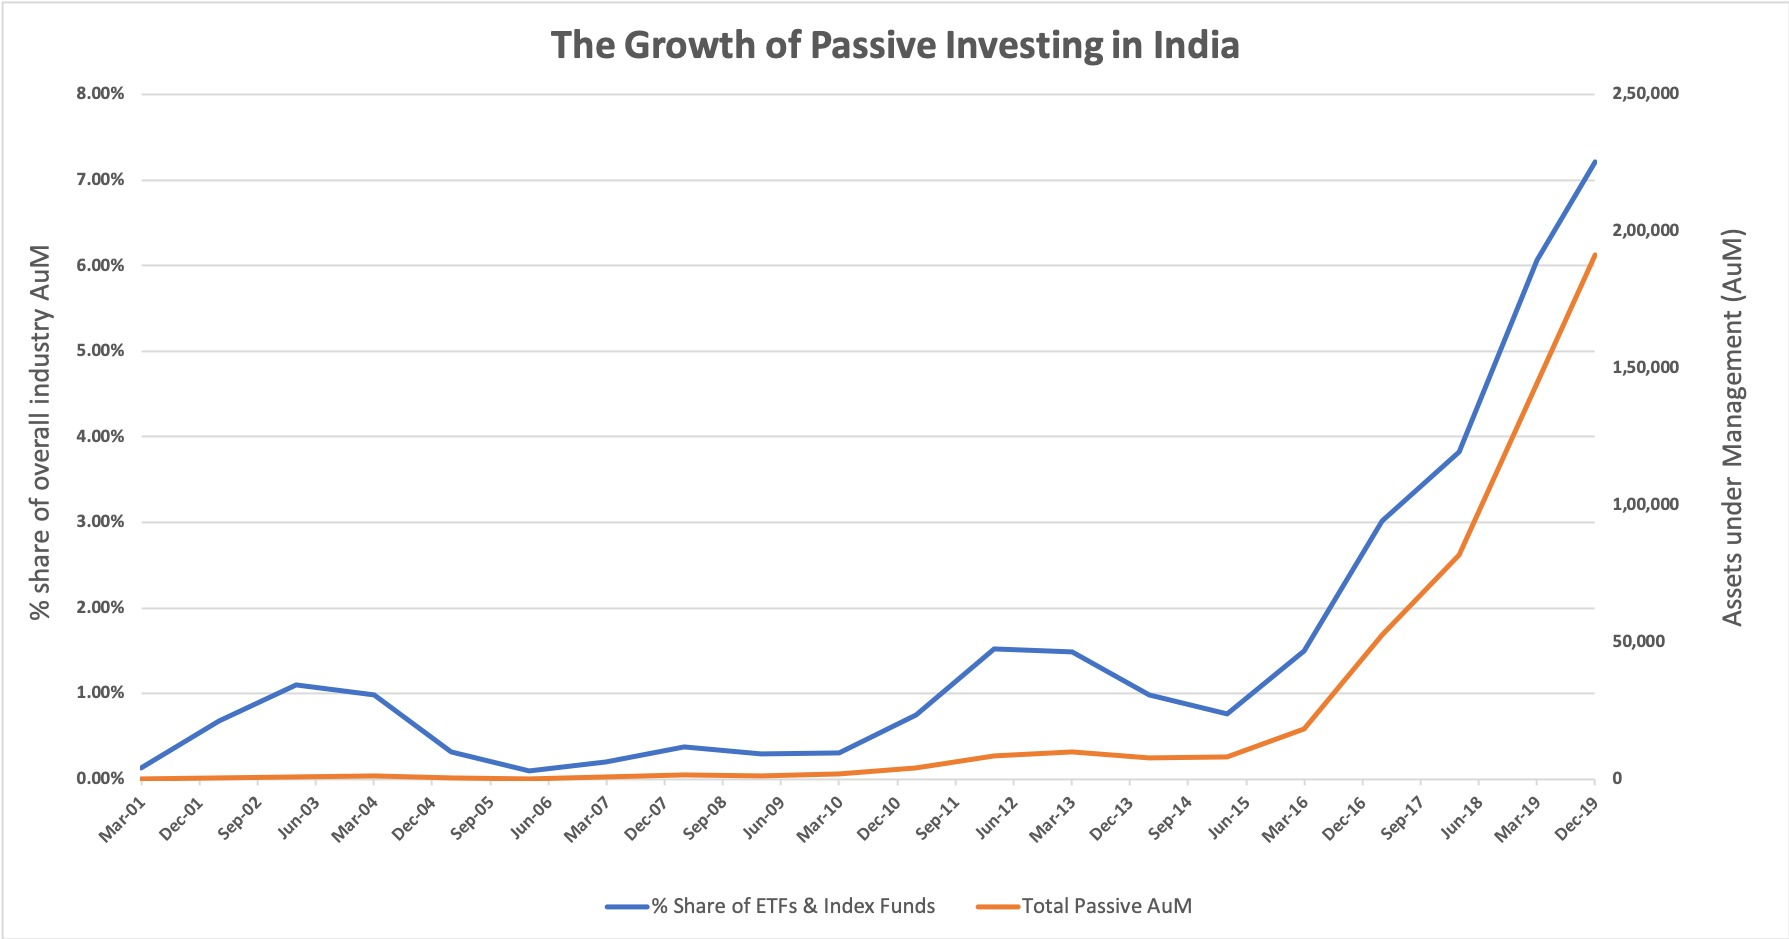 The growth of passive investing in India